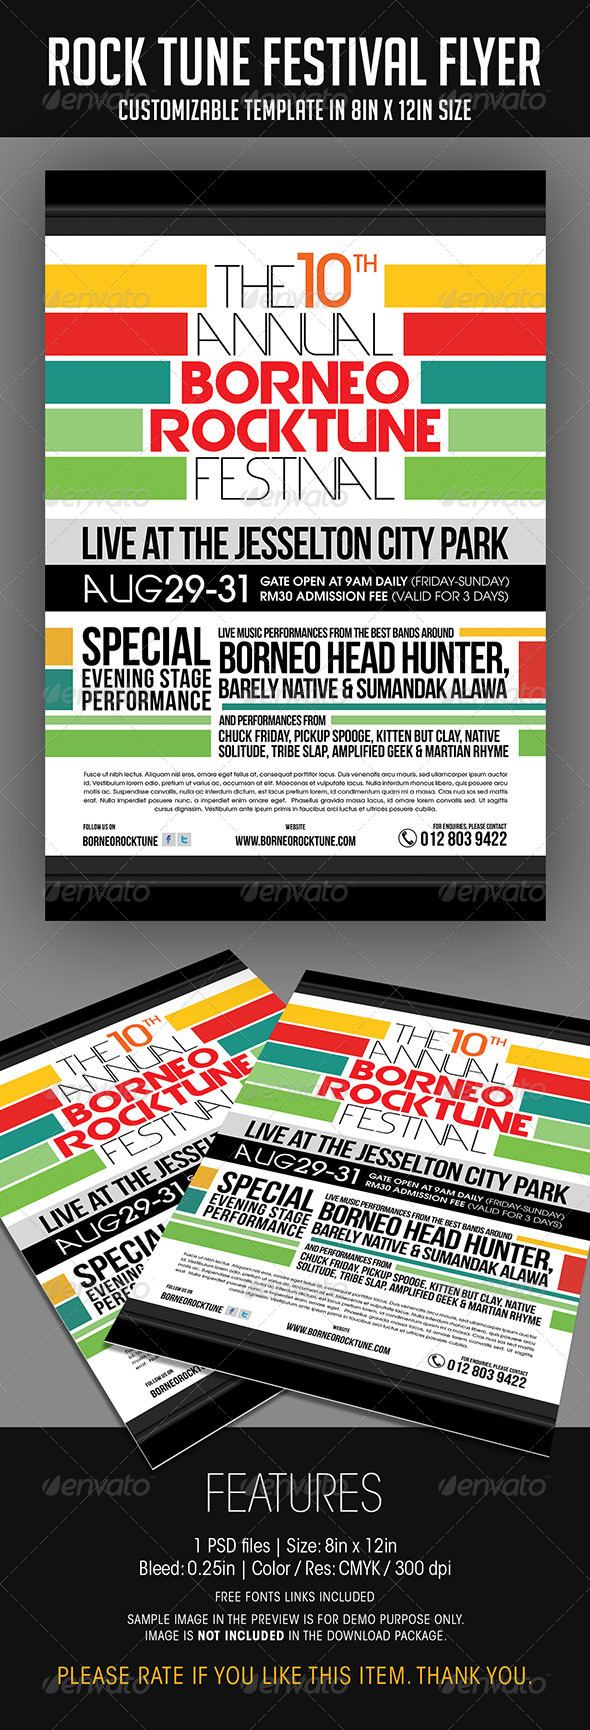 GraphicRiver Rock Tune Festival Flyer 6942541